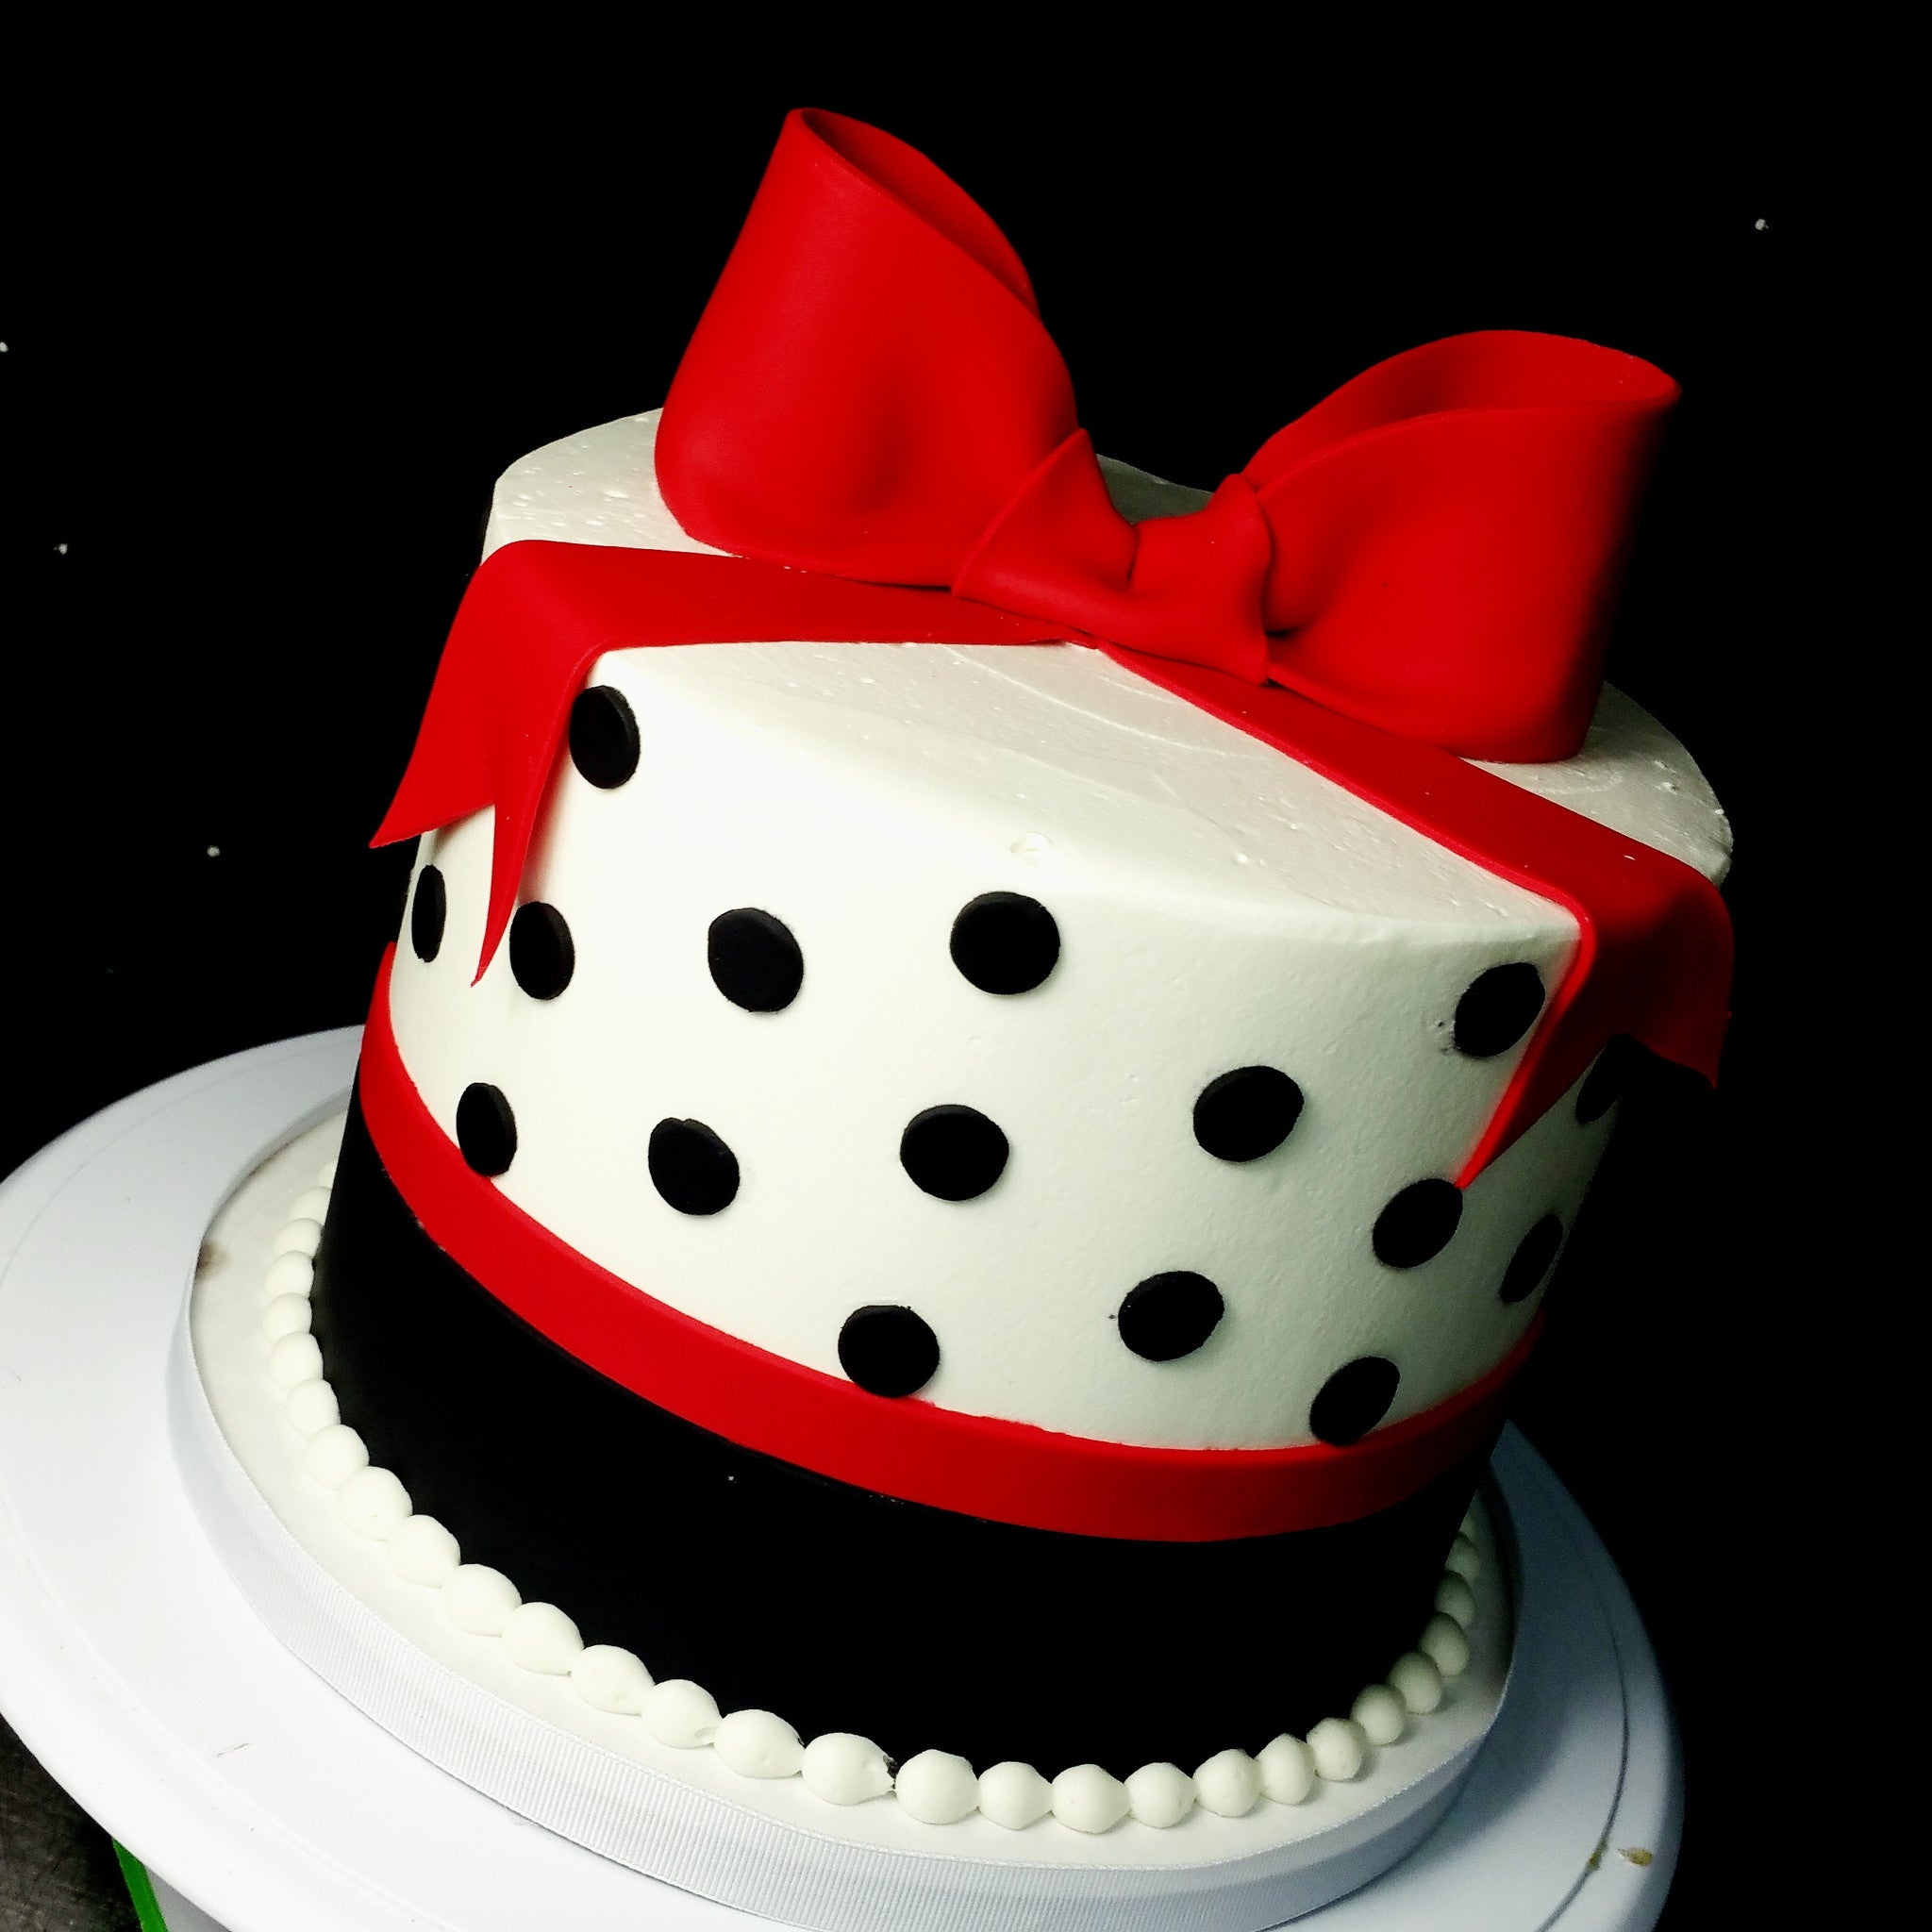 Marvelous Buttercream Black And Red Polka Dot Cake Blue Sheep Bake Shop Funny Birthday Cards Online Inifodamsfinfo